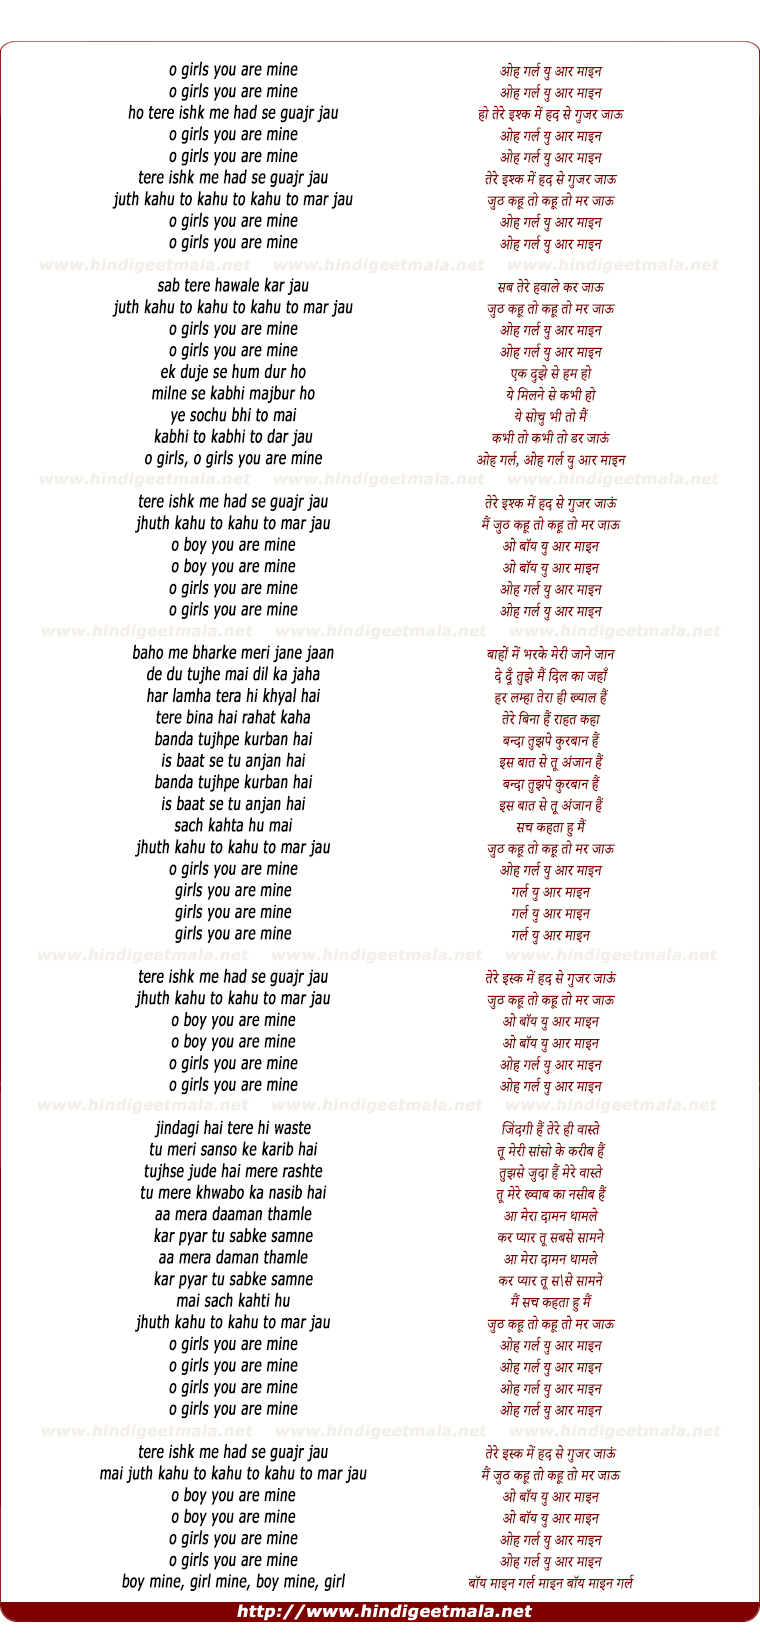 lyrics of song Oh Girl You're Mine